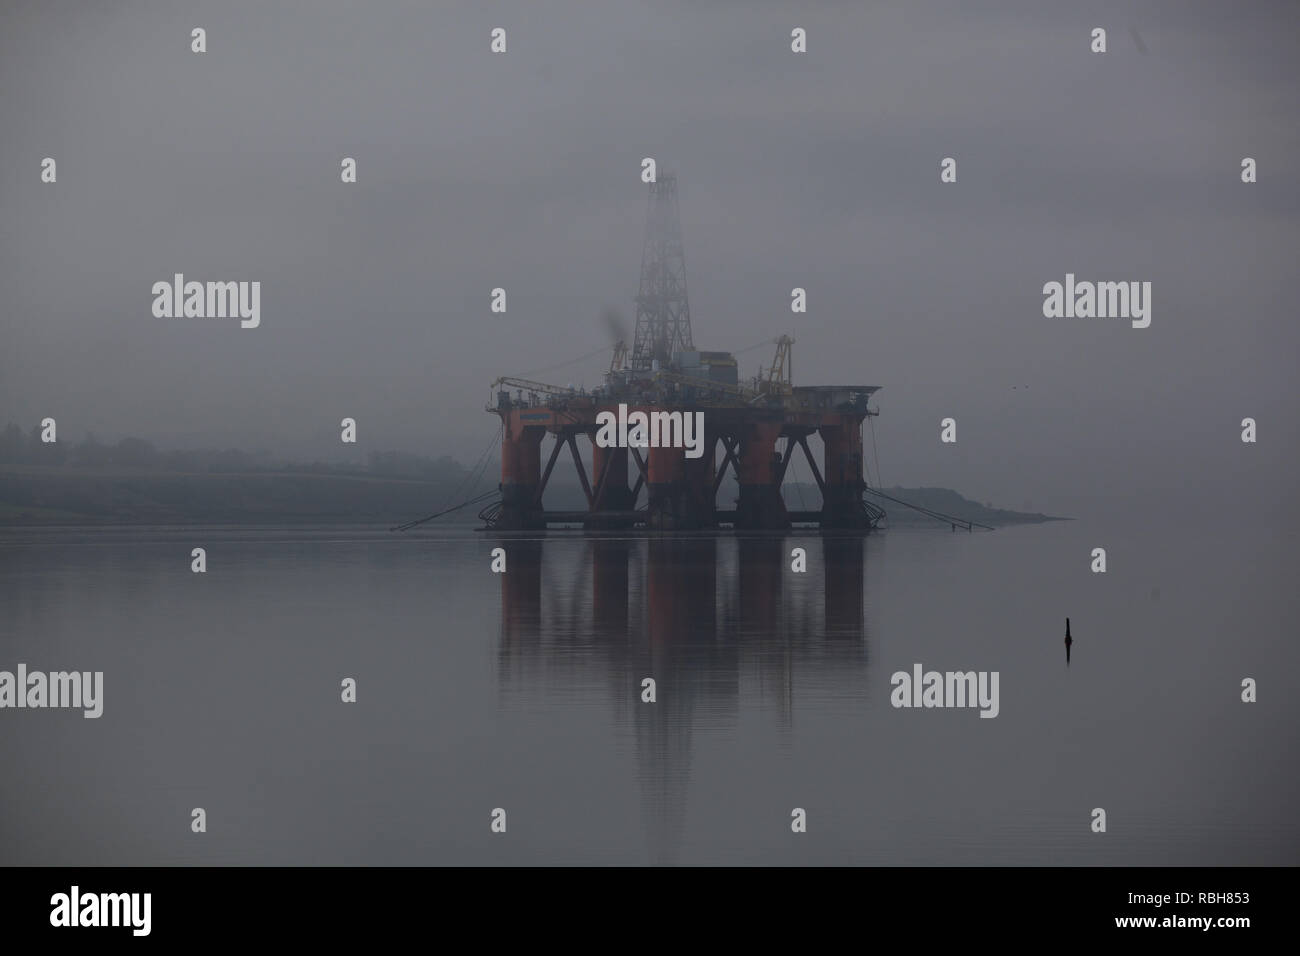 Redundant Oil Rig in The Scots Mist Invergordon, Ross Shire Scottish Highlands UK - Stock Image